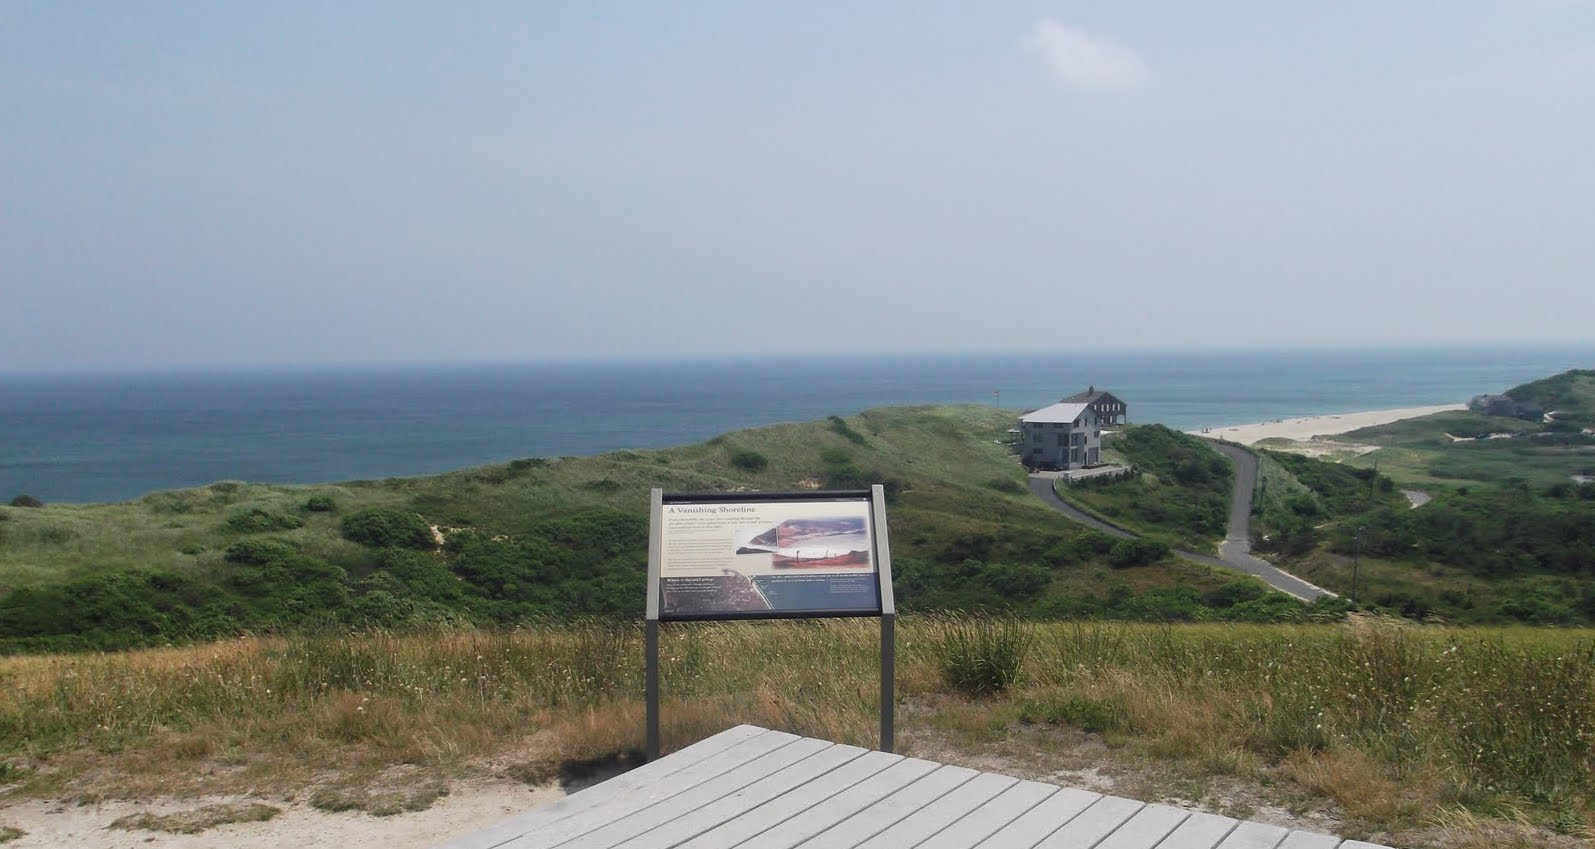 """The Cape Cod National Seashore was created   """"    to preserve the natural and historic values of a portion of Cape Cod for the inspiration and enjoyment of people all over the United States   ."""" (President John F. Kennedy when signing the bill into law.)"""